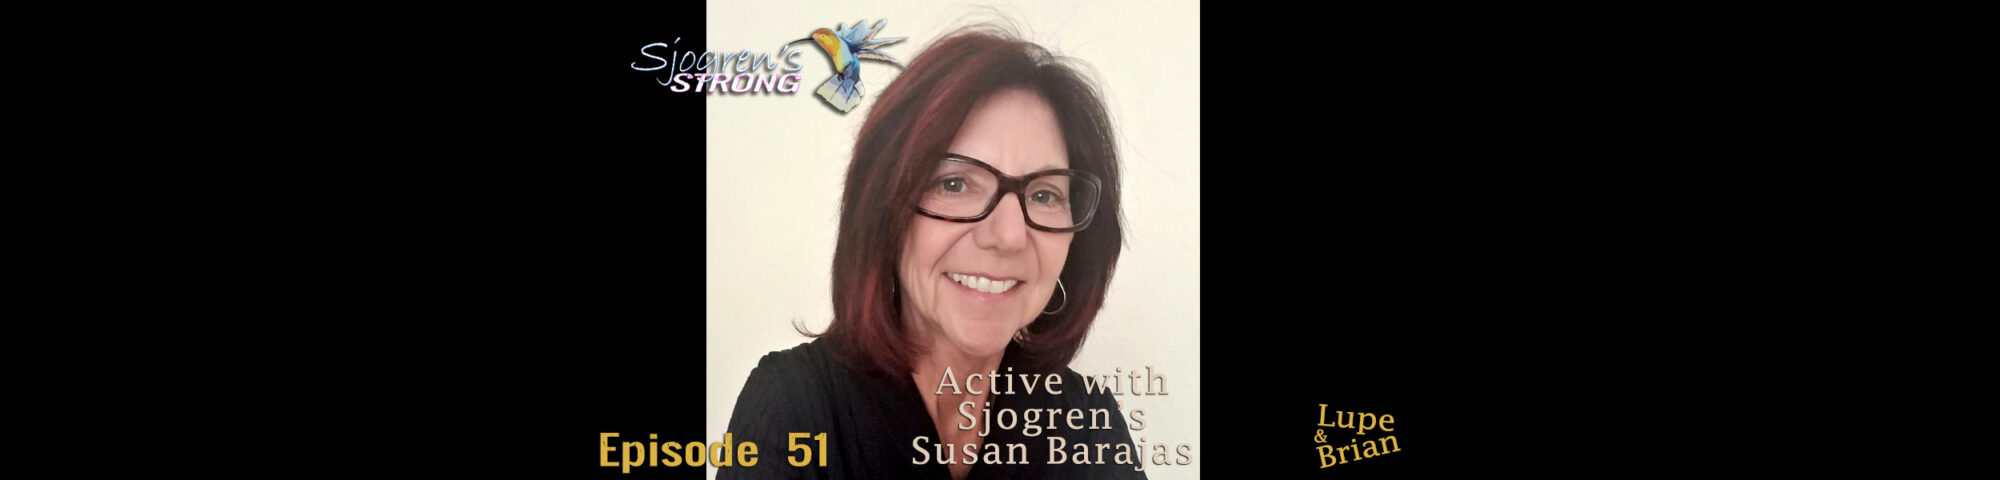 Active with Sjogren's Susan Barajas